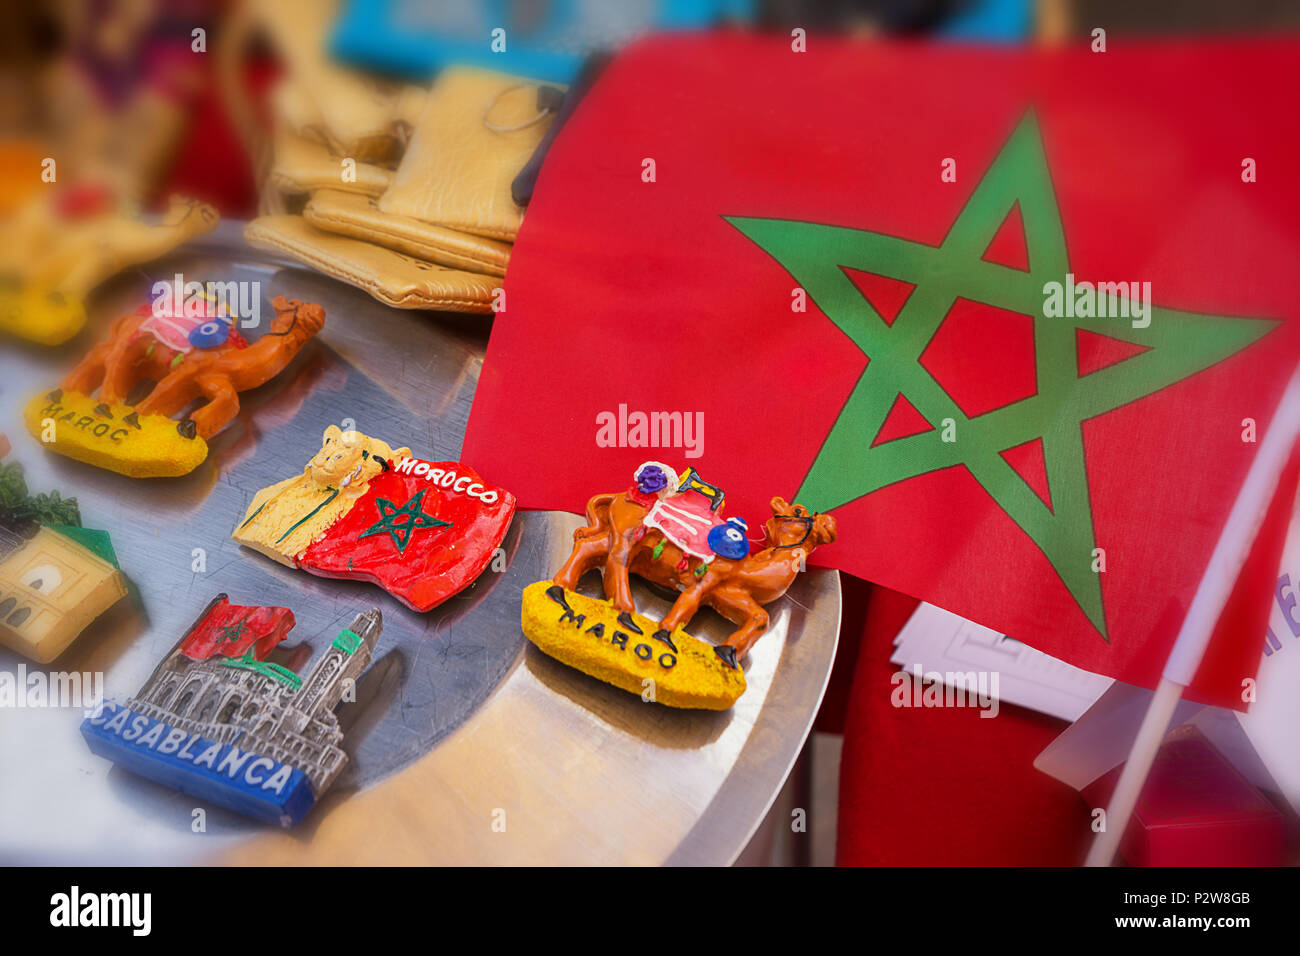 Souvenir Magnets With The Symbols Of Morocco In A Shop Stock Photo